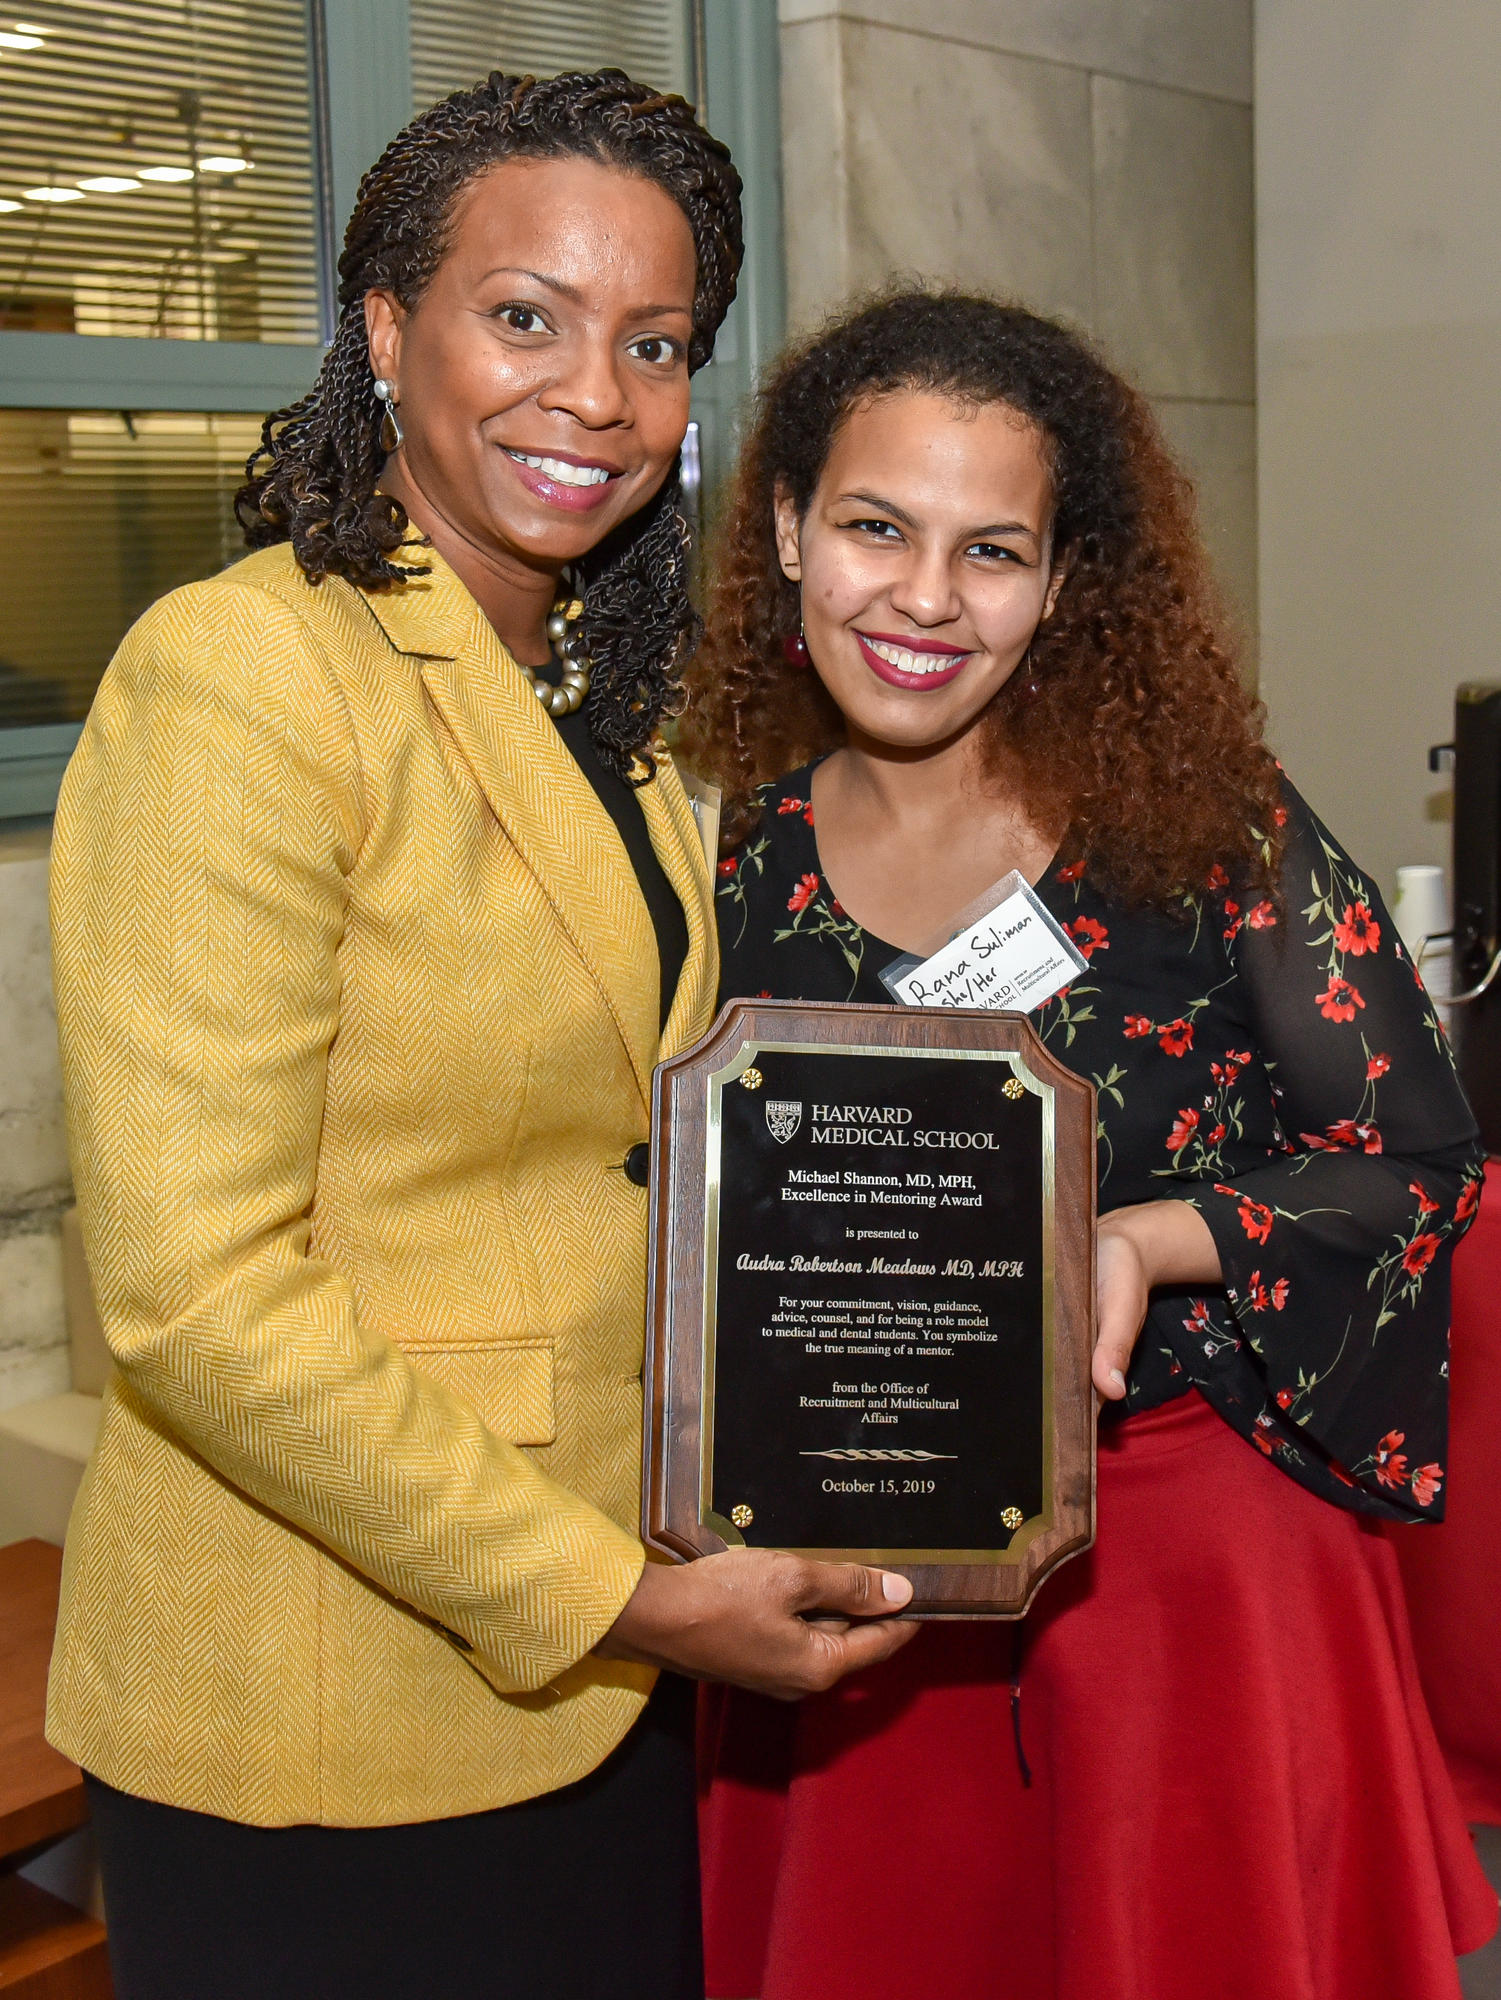 Audra Meadows, MD, MPH and Rana Suliman with award plaque. Image: Steve Lipofsky